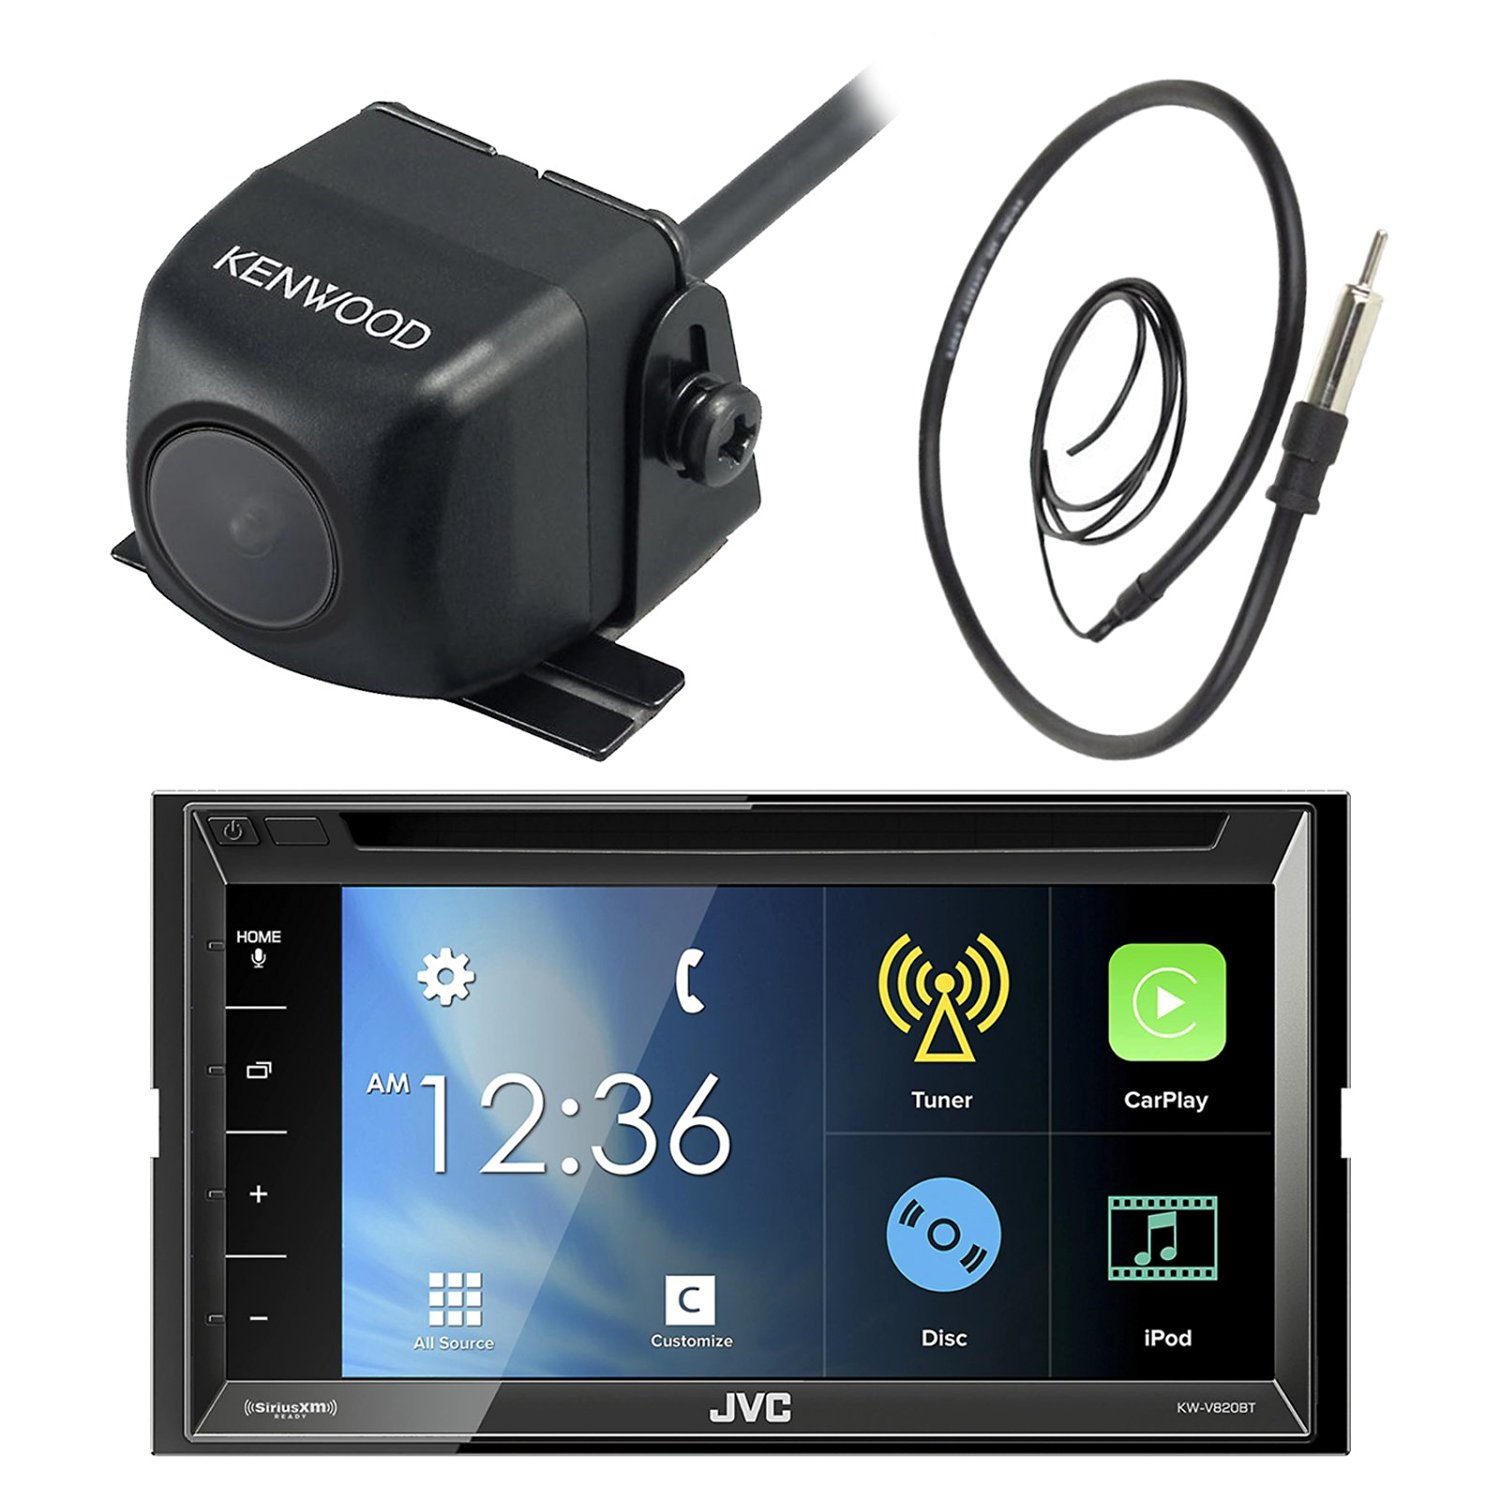 """JVC KW-V820BT 6.8"""" Inch Double DIN Touch Screen Car CD DVD USB Bluetooth Stereo Receiver Bundle Combo With Kenwood Rearview Wide Angle View Backup Camera, Enrock 22"""" AM/FM Radio Antenna"""